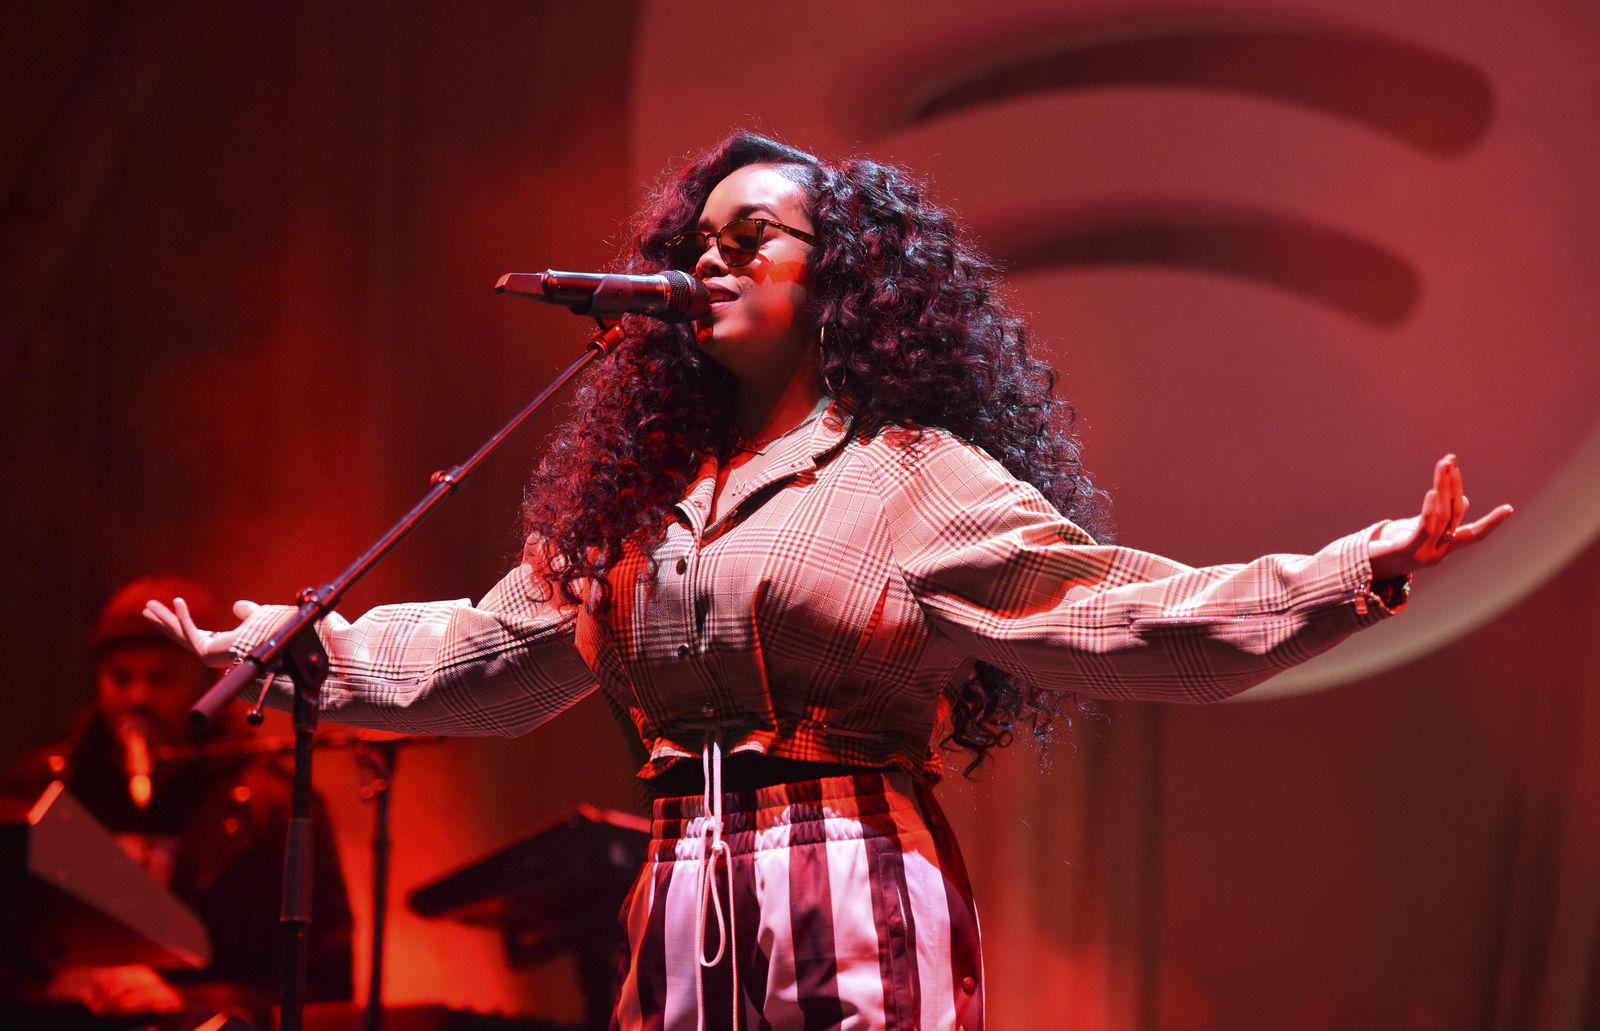 H.E.R. performs at the Spotify Best New Artist 2019 Party at The Hammer Museum on Thursday, Feb. 7, 2019, in Los Angeles. (Photo by Phil McCarten/Invision/AP)